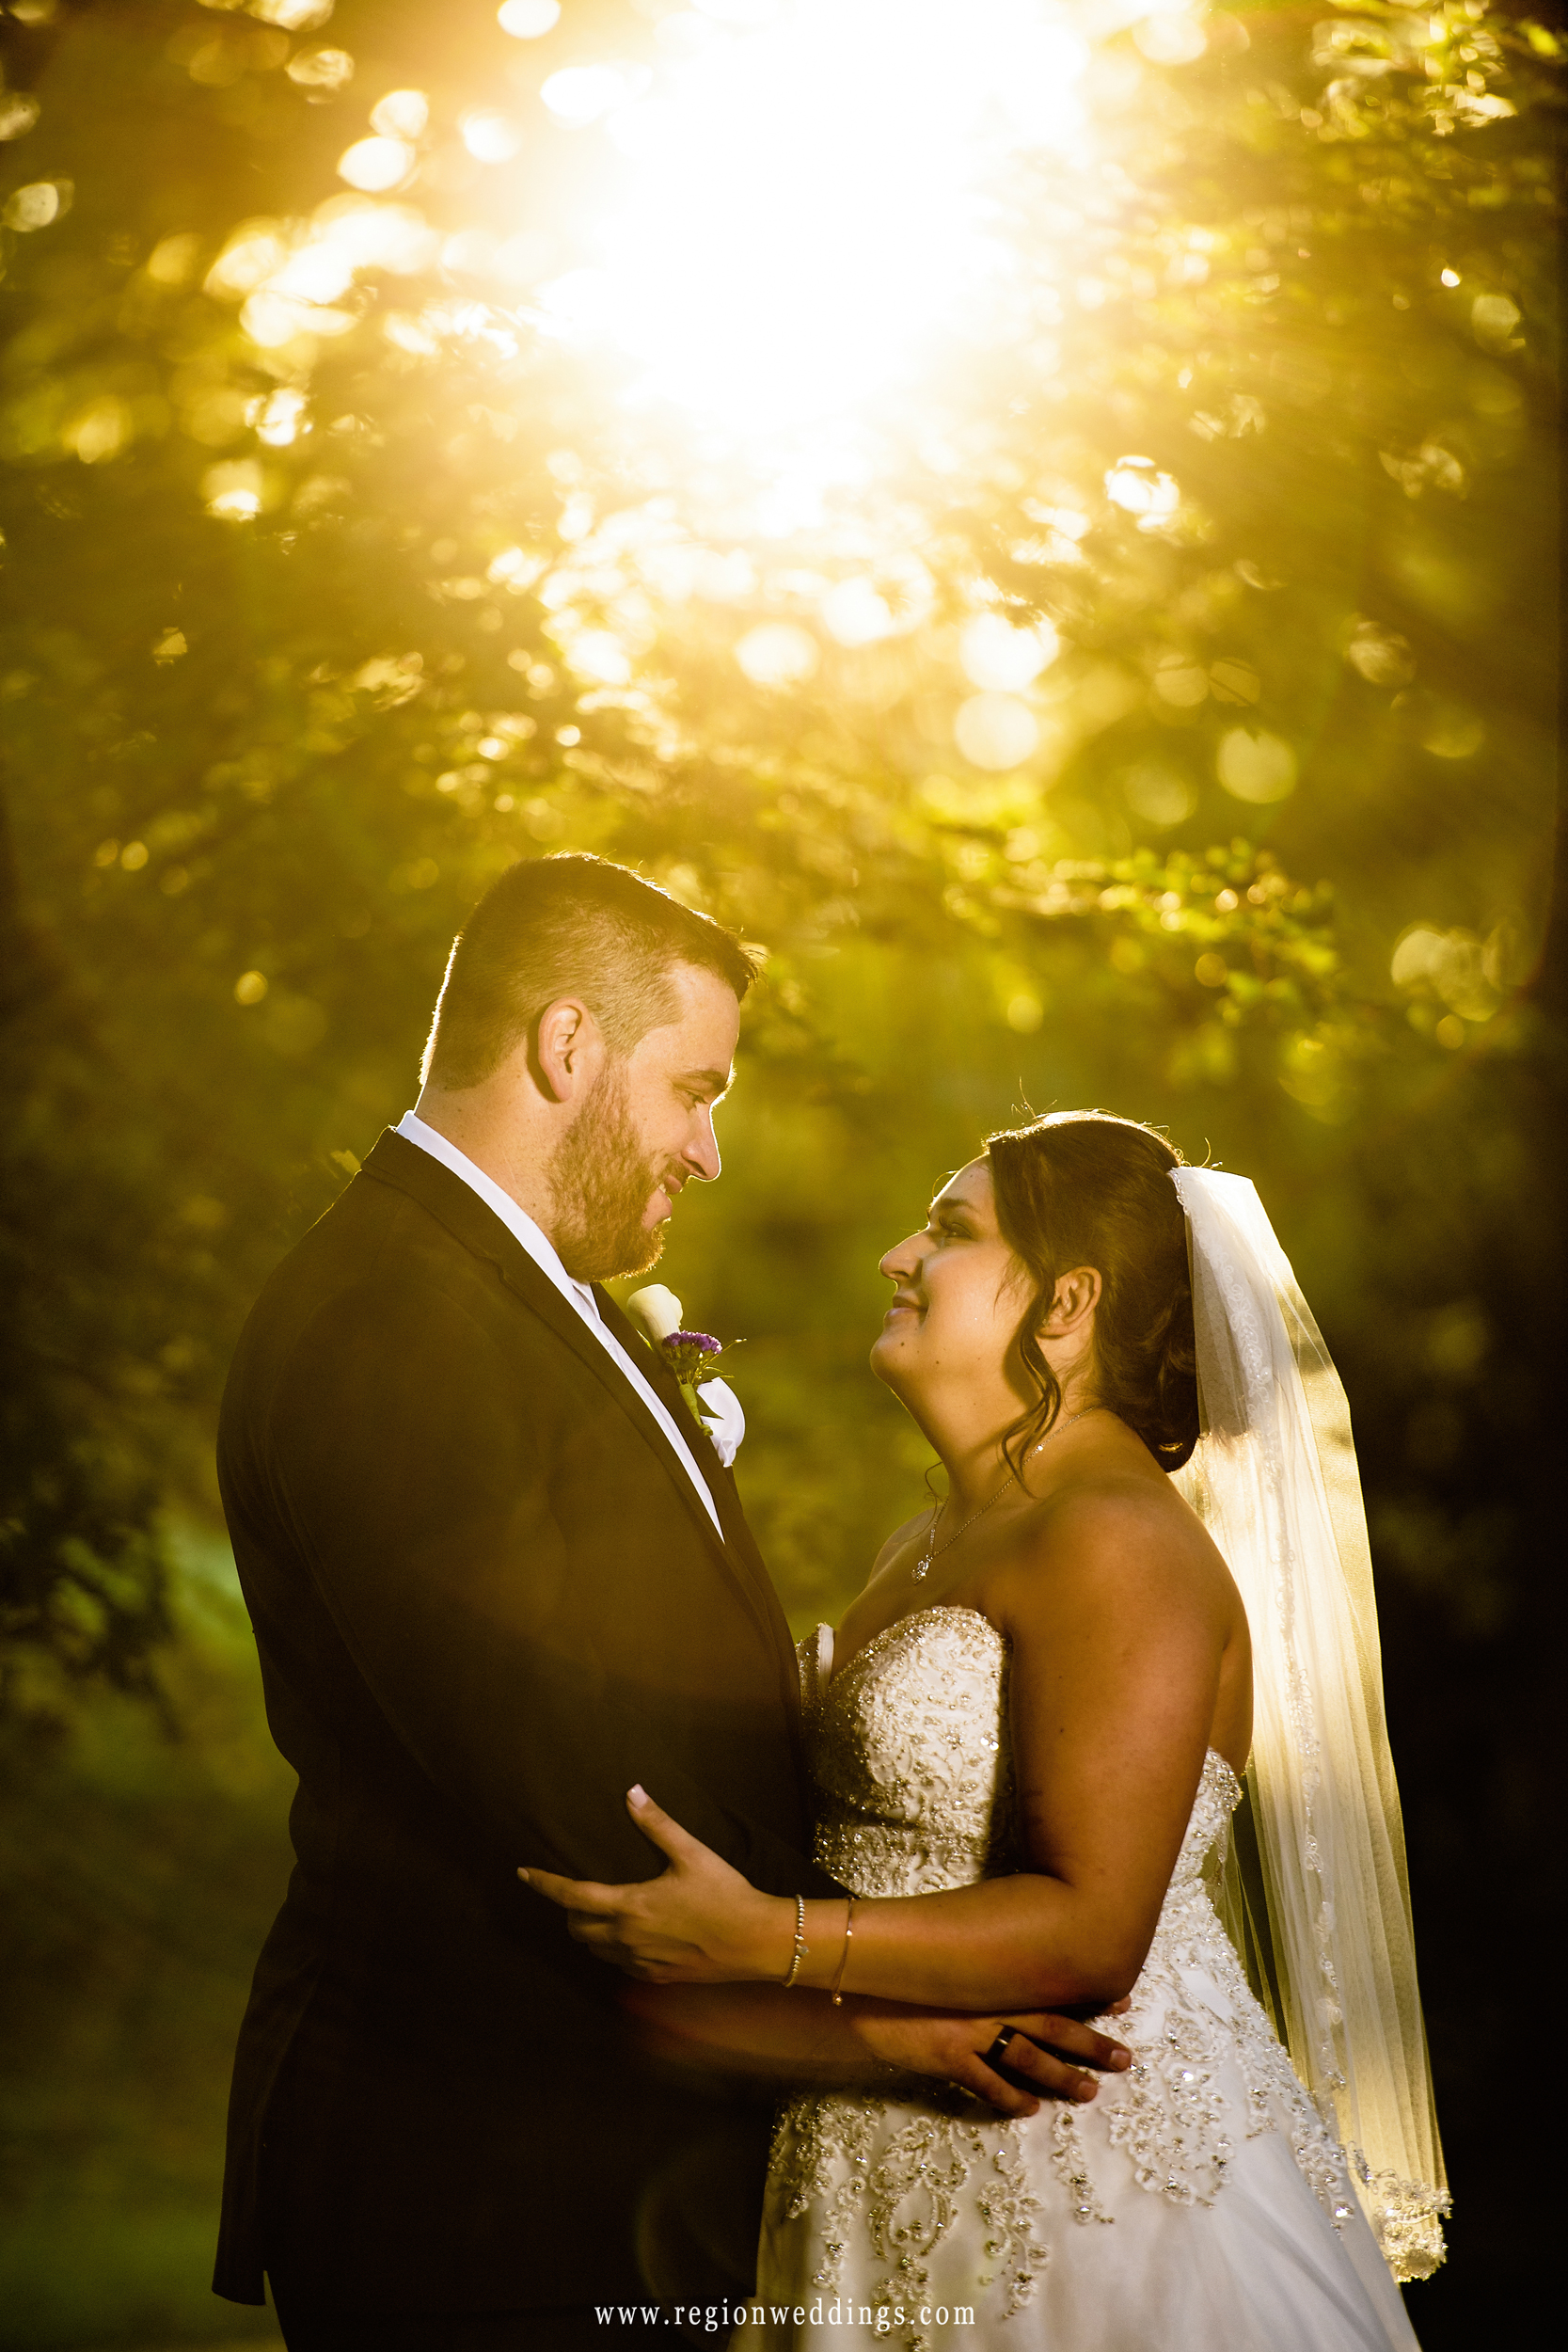 Golden sun flare surrounds the bride and groom.